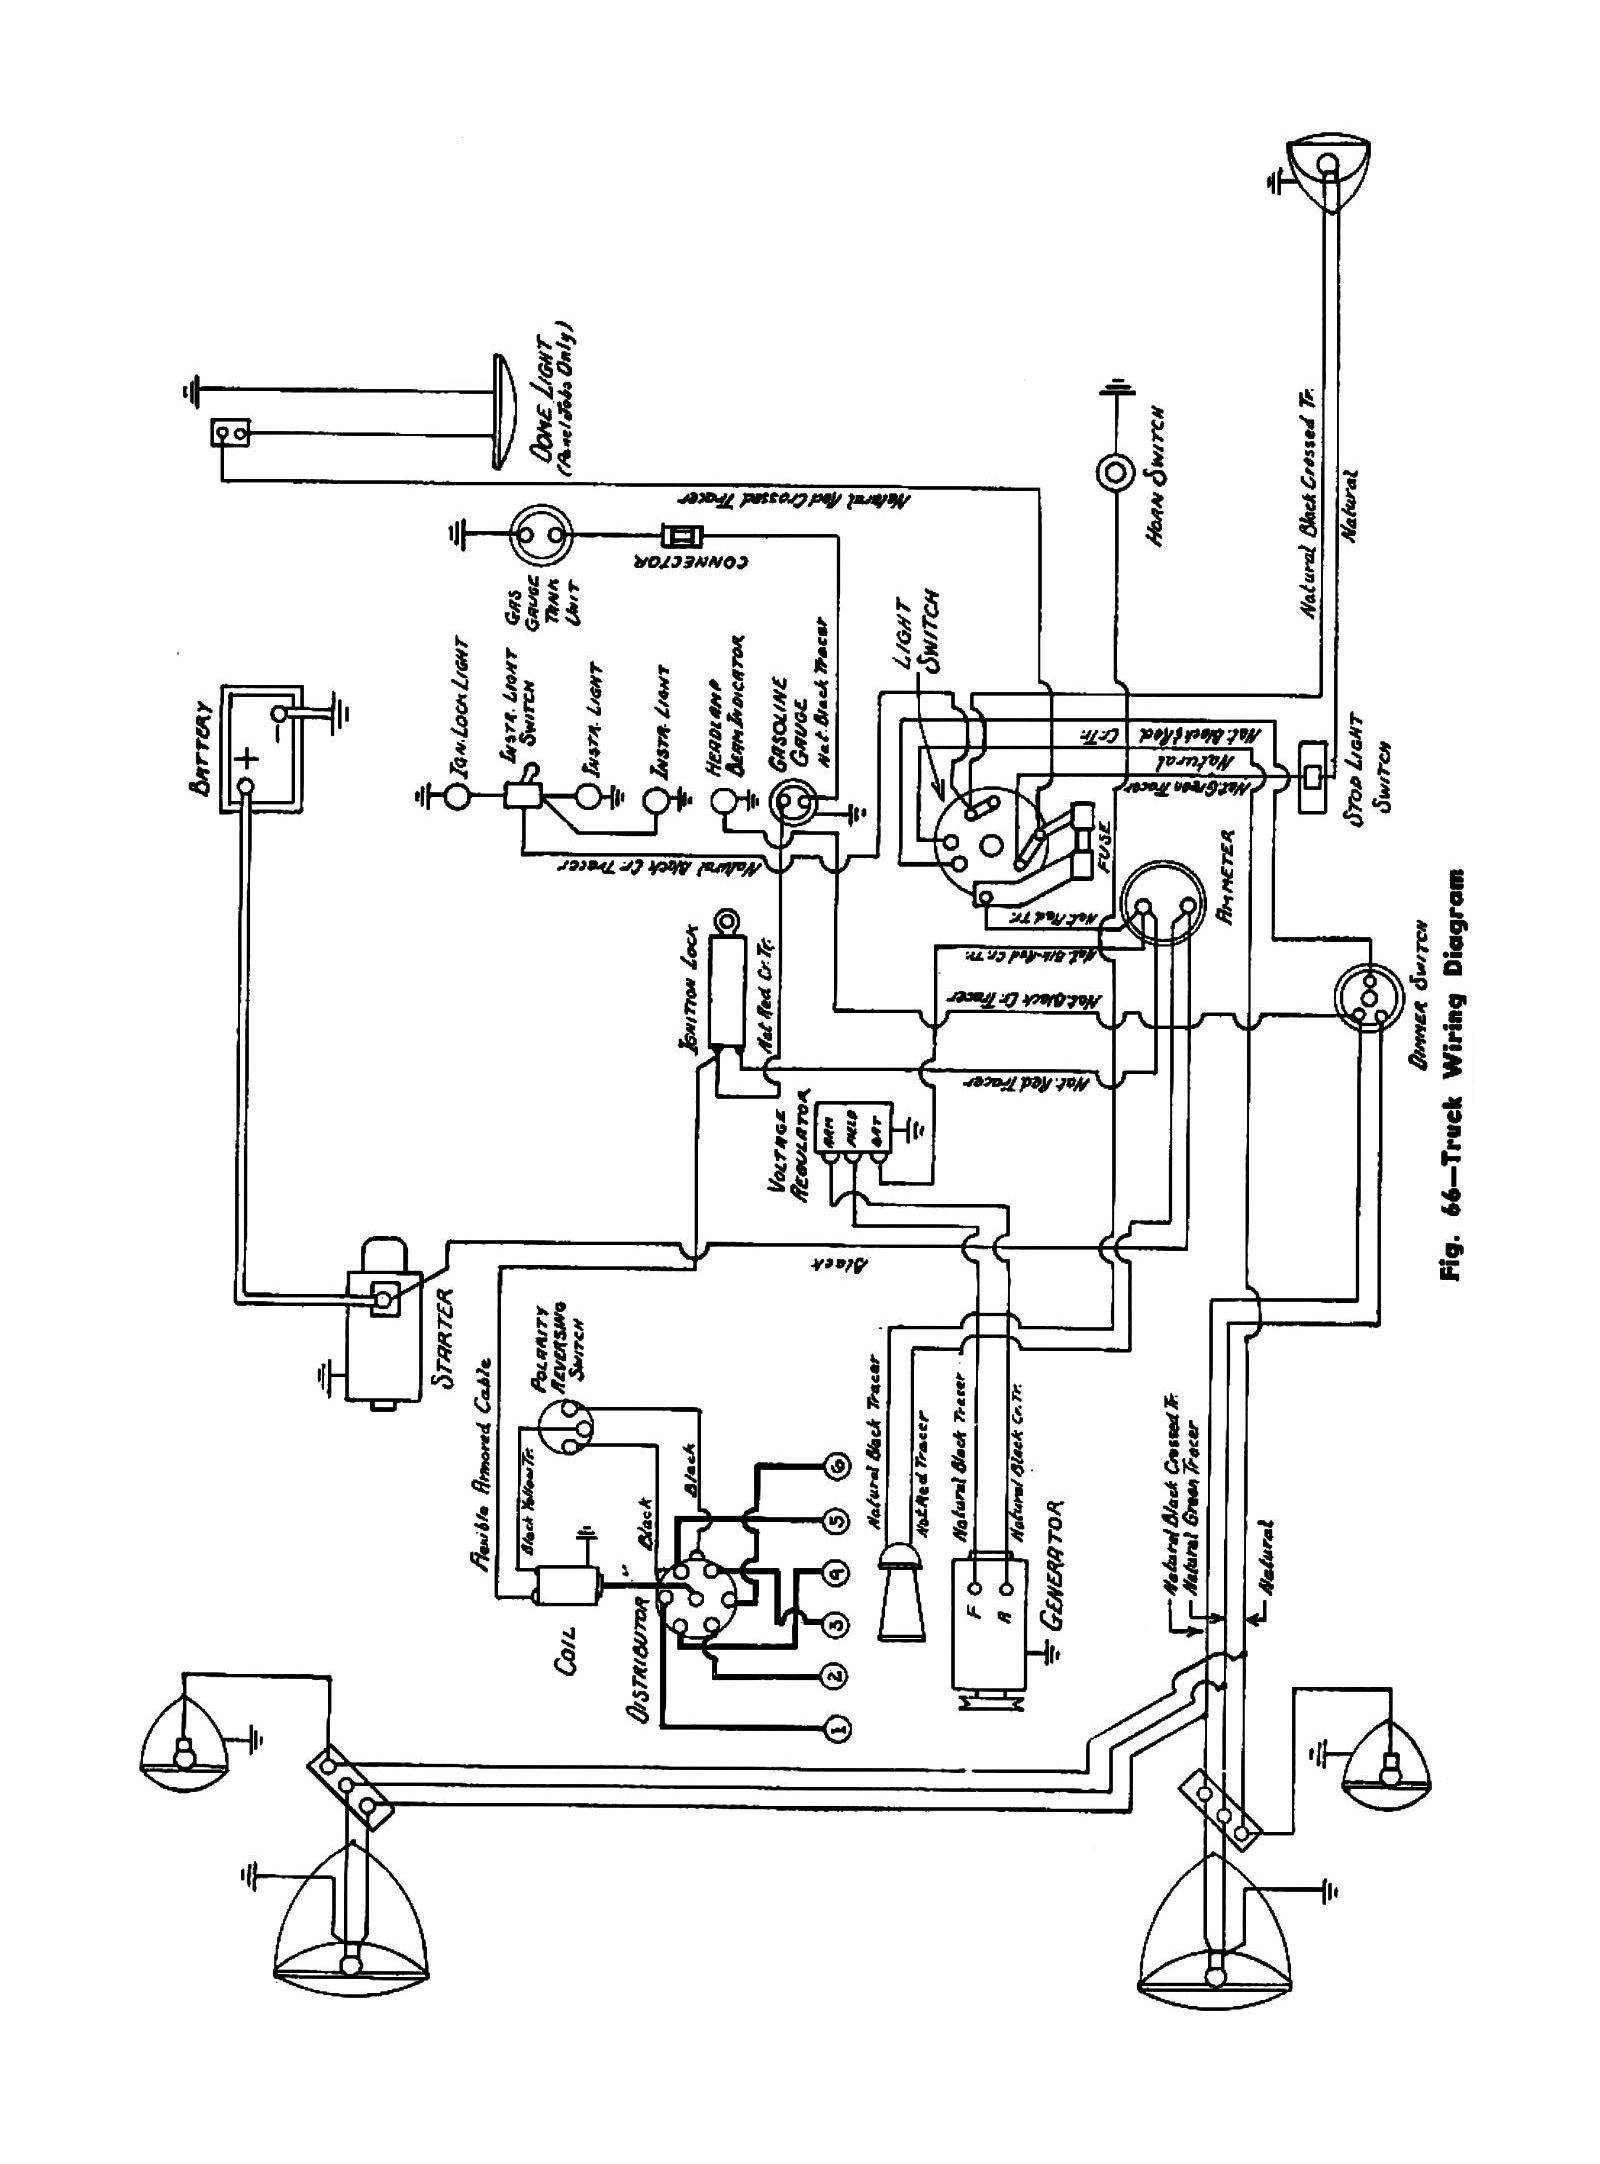 Wiring Diagram For A 1937 Chevy Truck Libraries Kia Sorento D4cb Engine Diagrams 1941 Pickup Todays1937 Electrical 1995